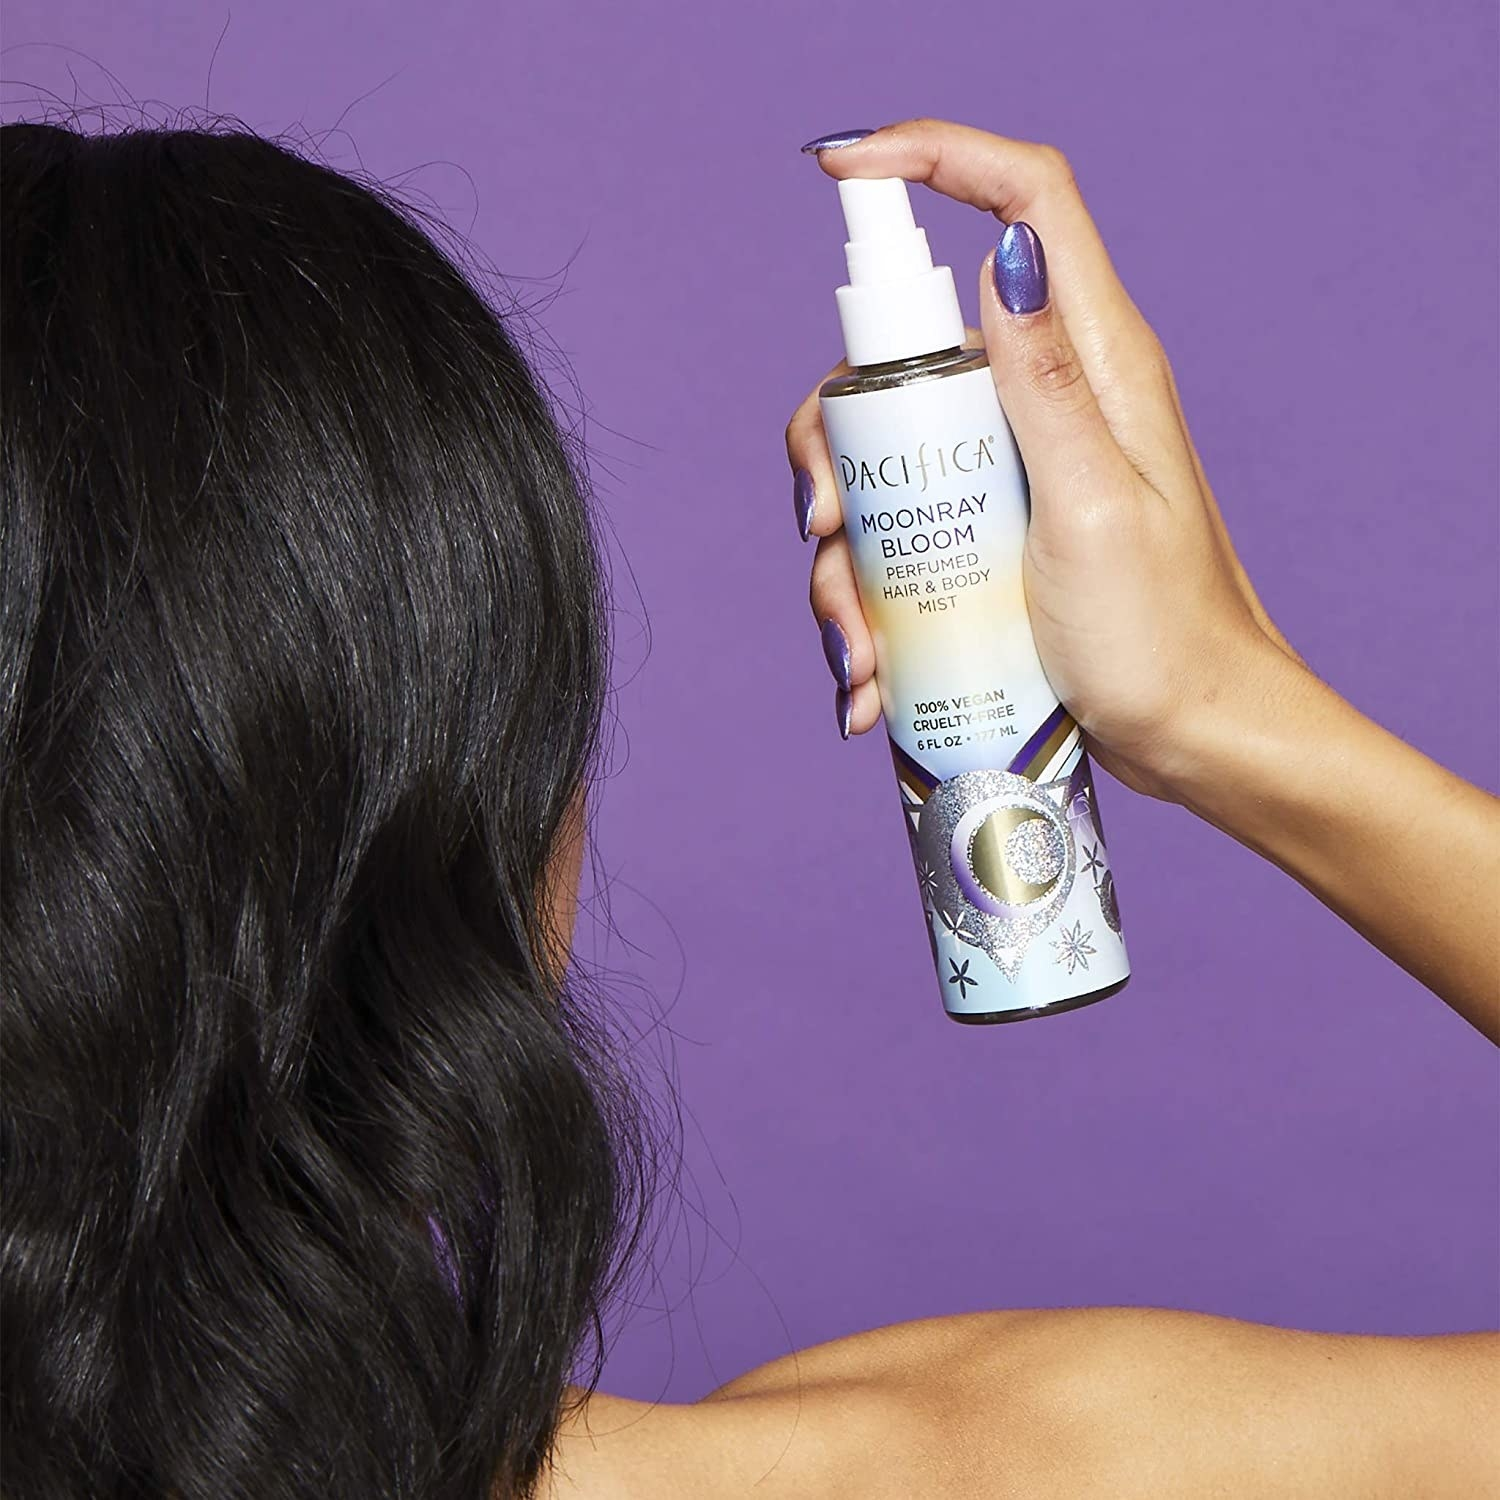 Model holding bottle of Pacifica Moonray Bloom Hair and Body Mist